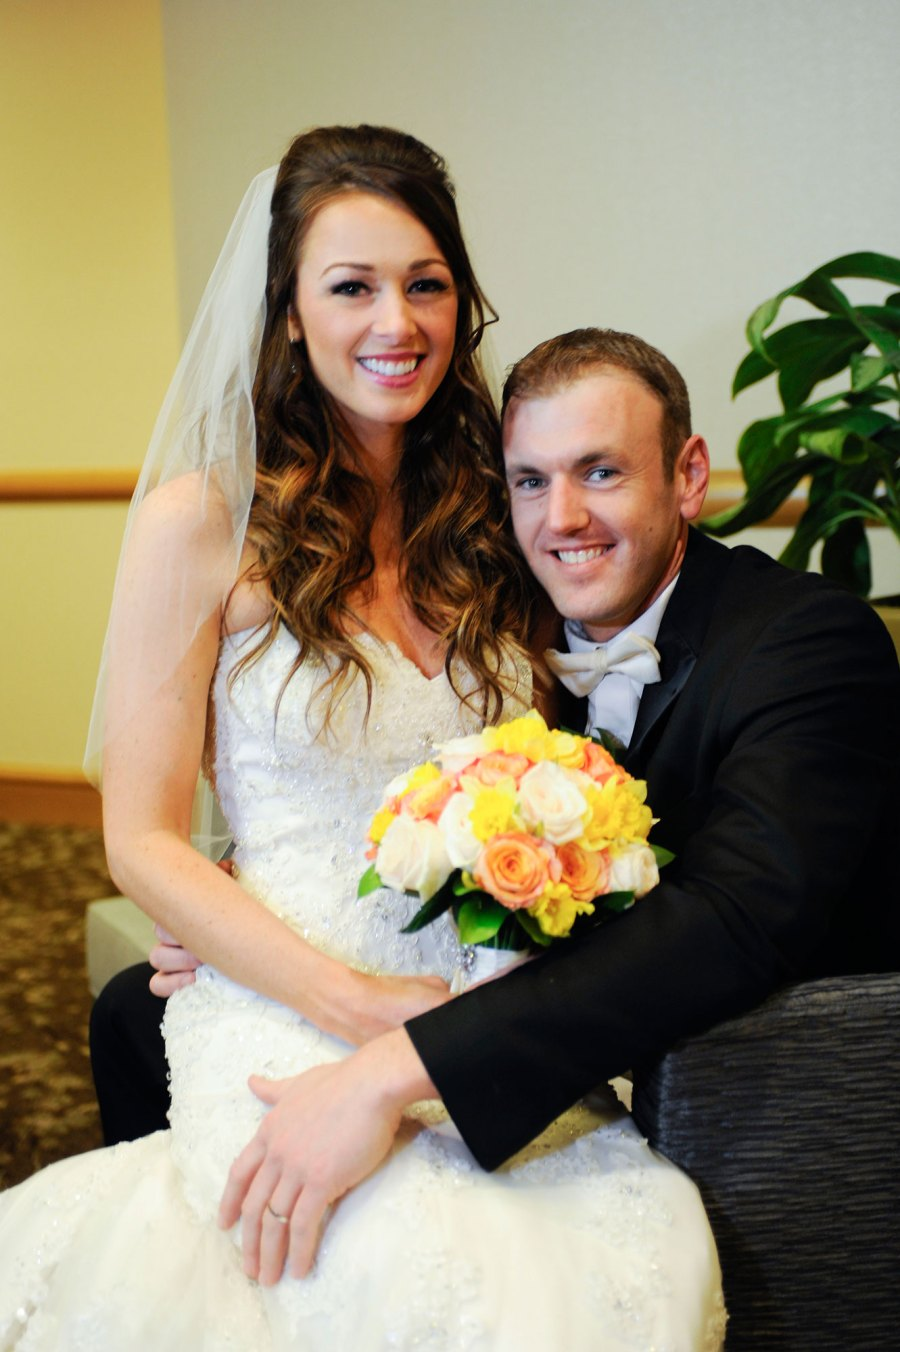 Jamie and Doug married at first sight